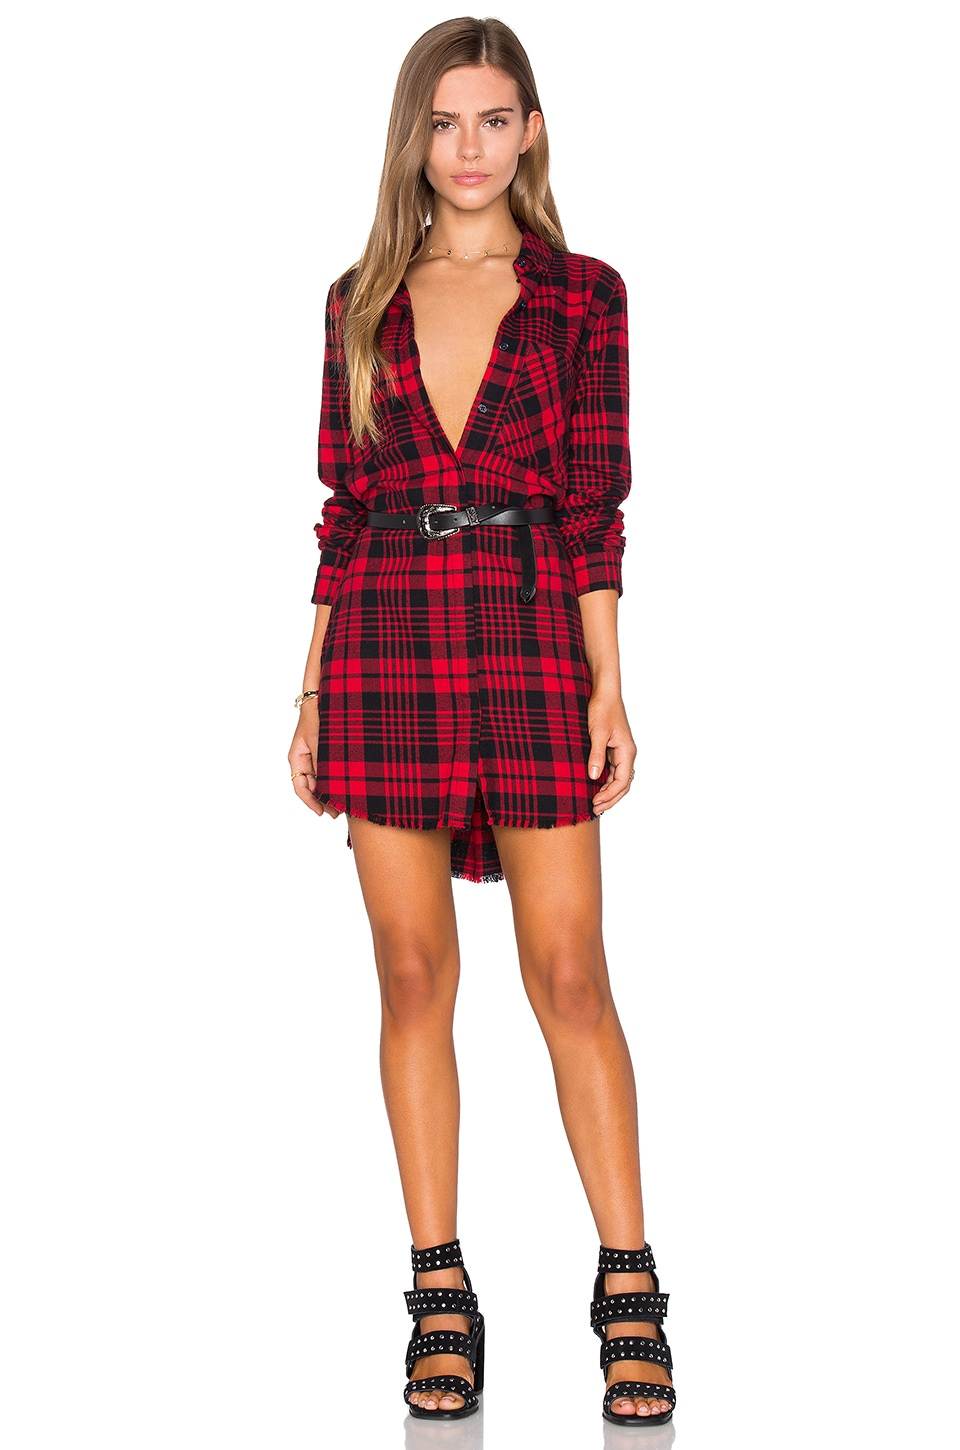 superior performance performance sportswear variety styles of 2019 Black Orchid Fray Hem Shirt Dress in Red | REVOLVE